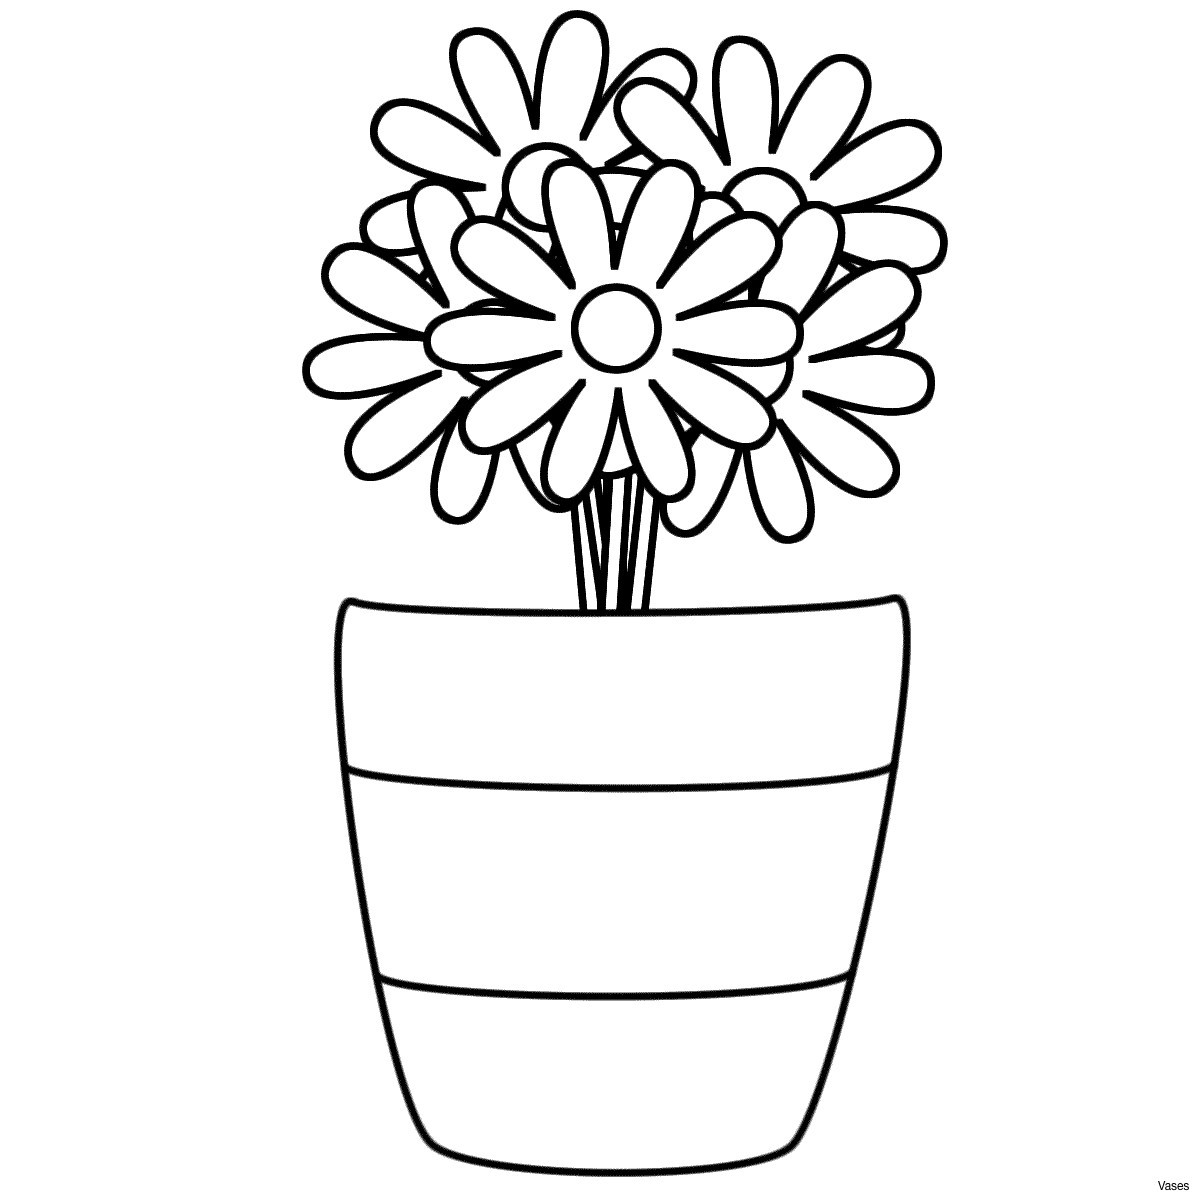 buy vase online of care bears coloring pages best of vases flower vase coloring page within care bears coloring pages best of vases flower vase coloring page pages flowers in a top